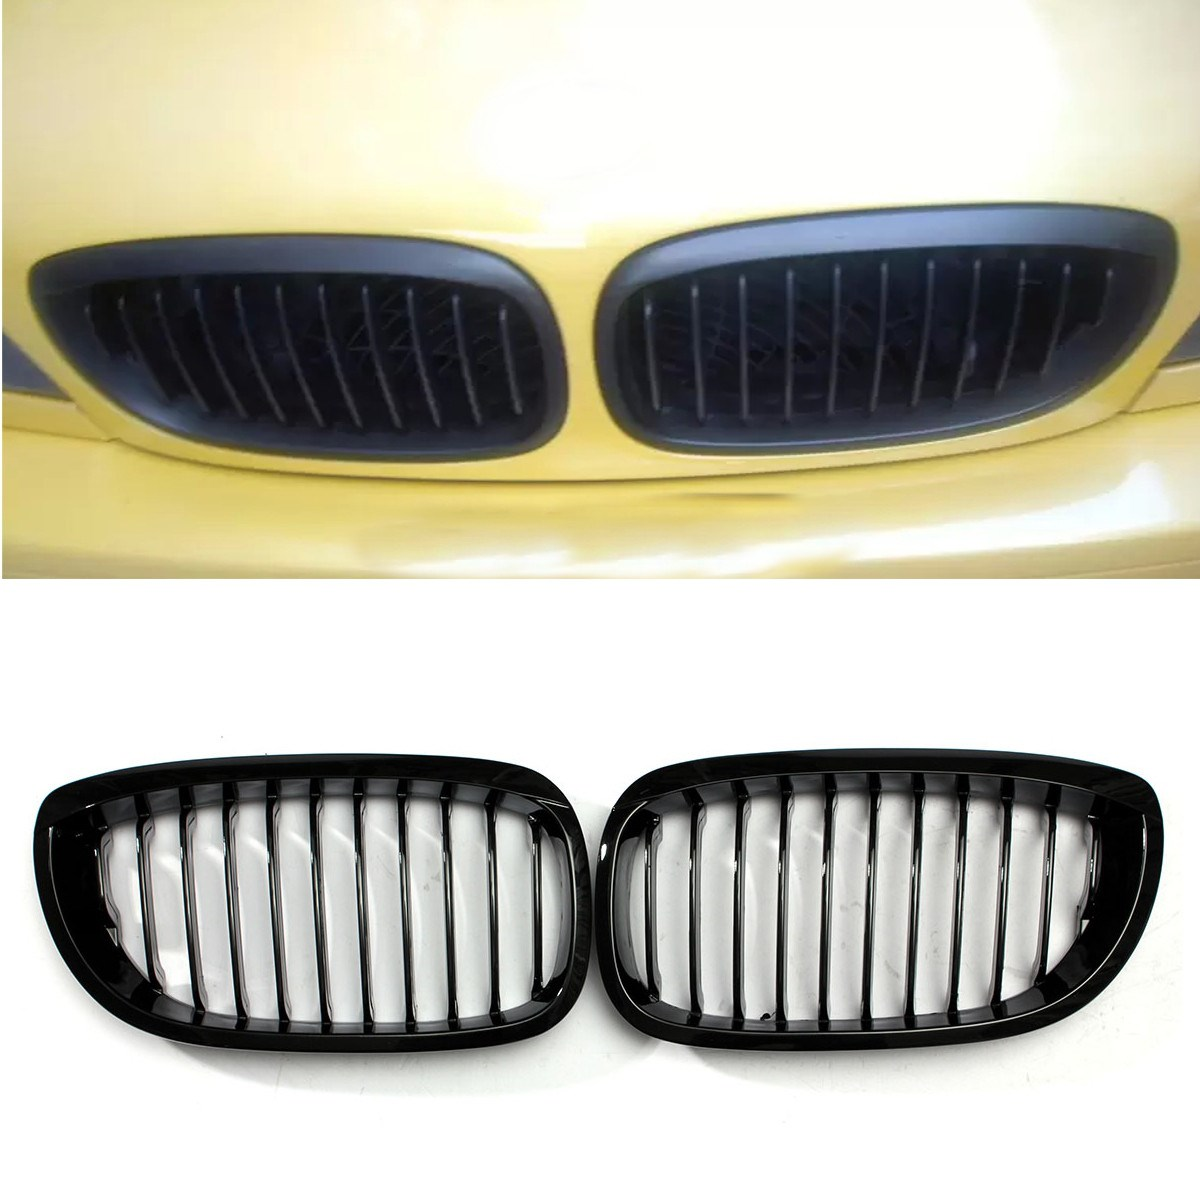 2Pcs Gloss Black Kidney Grille Grill For BMW E46 3 Series 2Dr Coupe Cabriolet 2002 2003